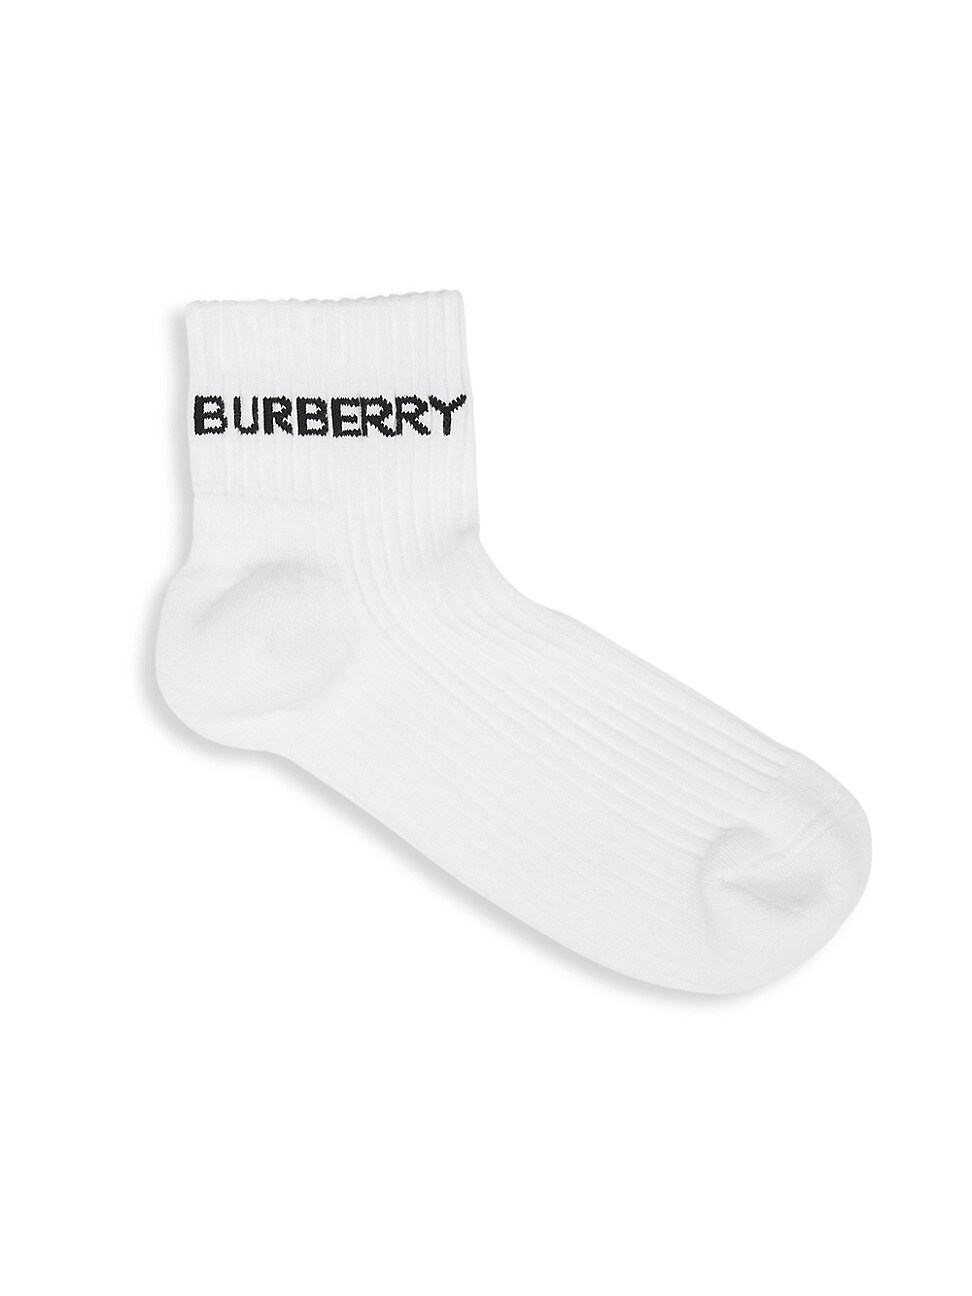 Burberry WOMEN'S LOGO INTARSIA TECHNICAL STRETCH COTTON ANKLE SOCKS